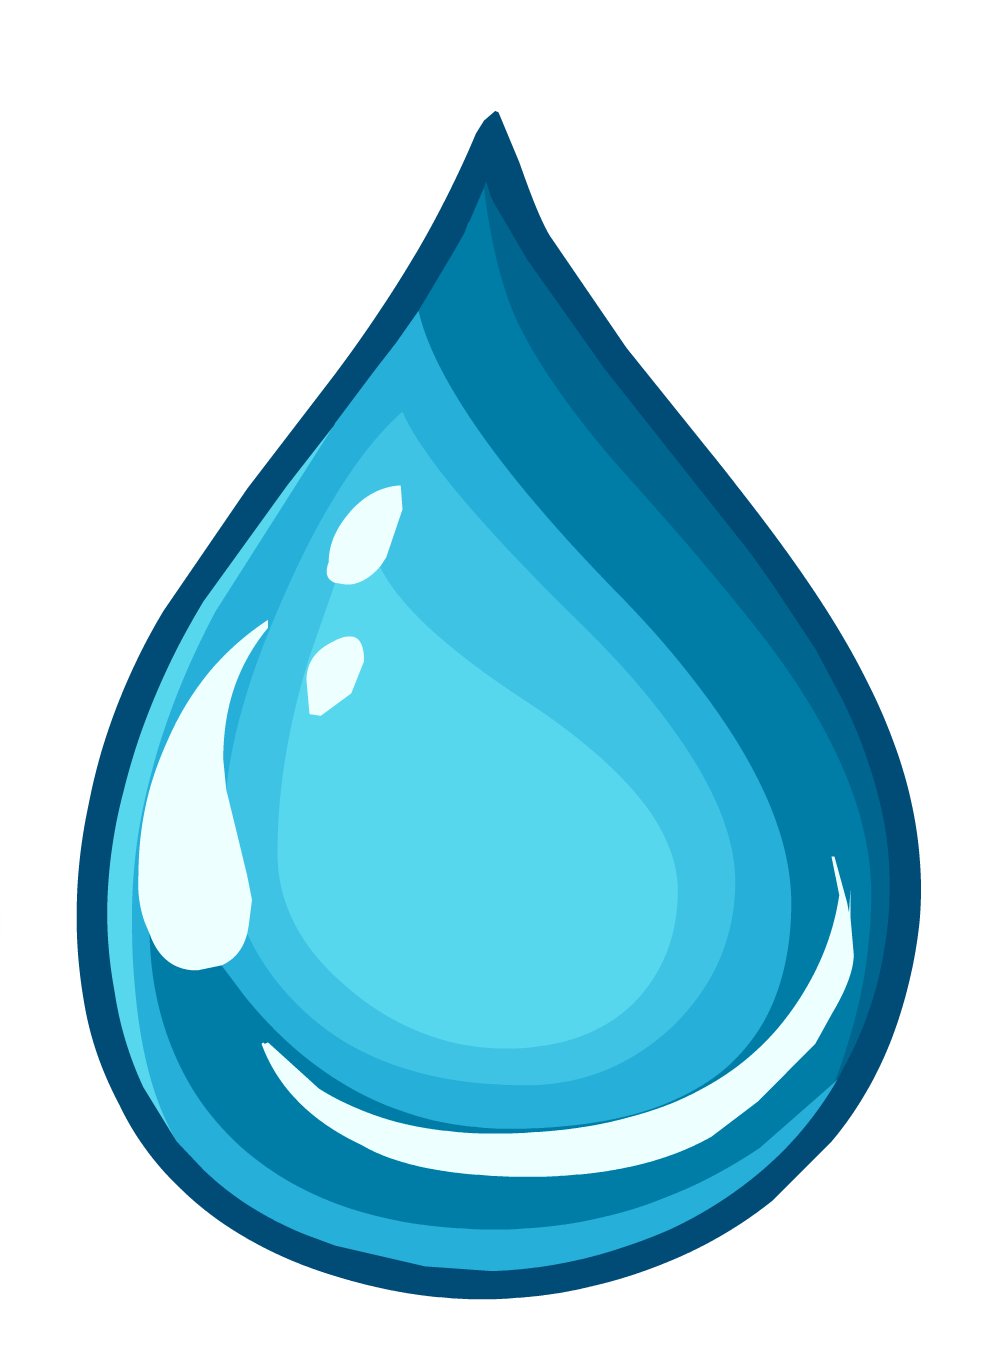 Clipart png water. Clean pin club penguin